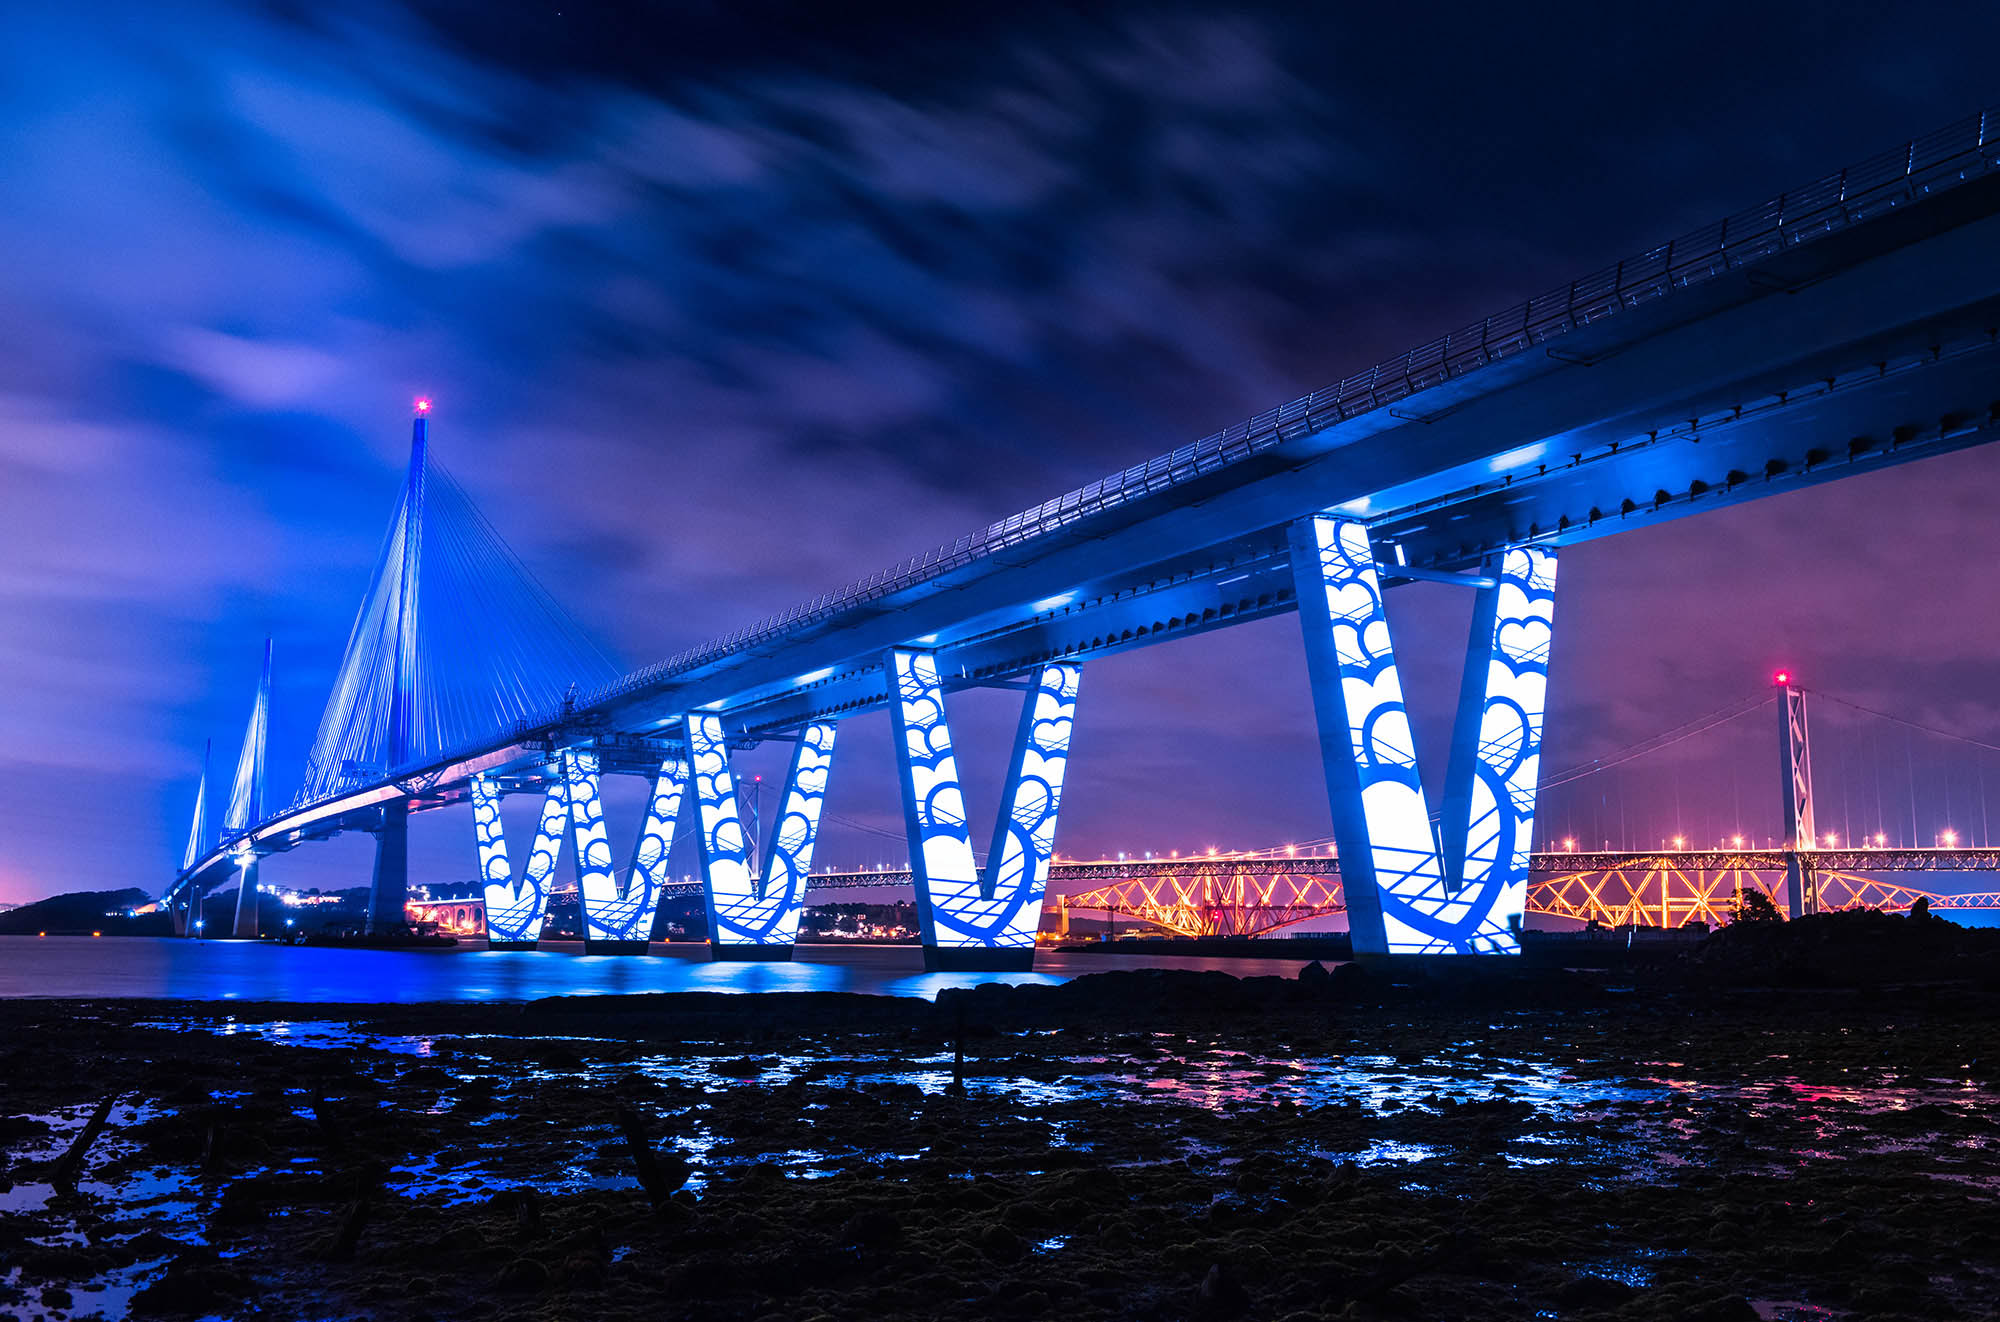 Queensferry Crossing Launch Projection, under bridge